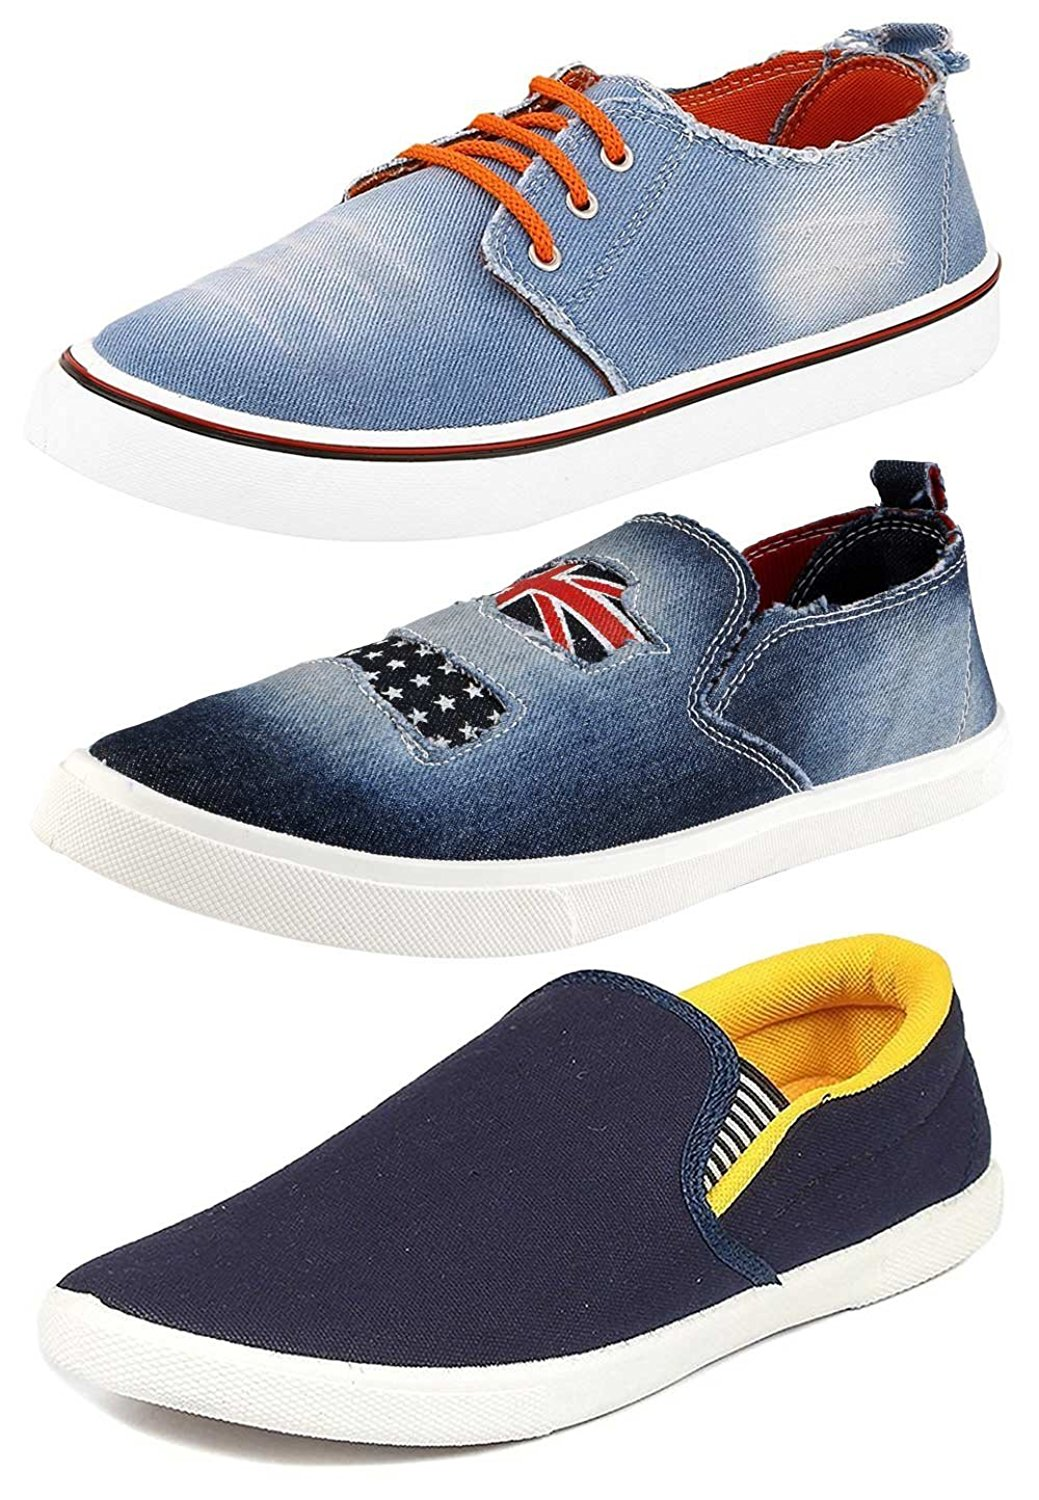 Chevit Men's Denim Combo Pack of 3 Blue Loafers and Sneakers Shoes